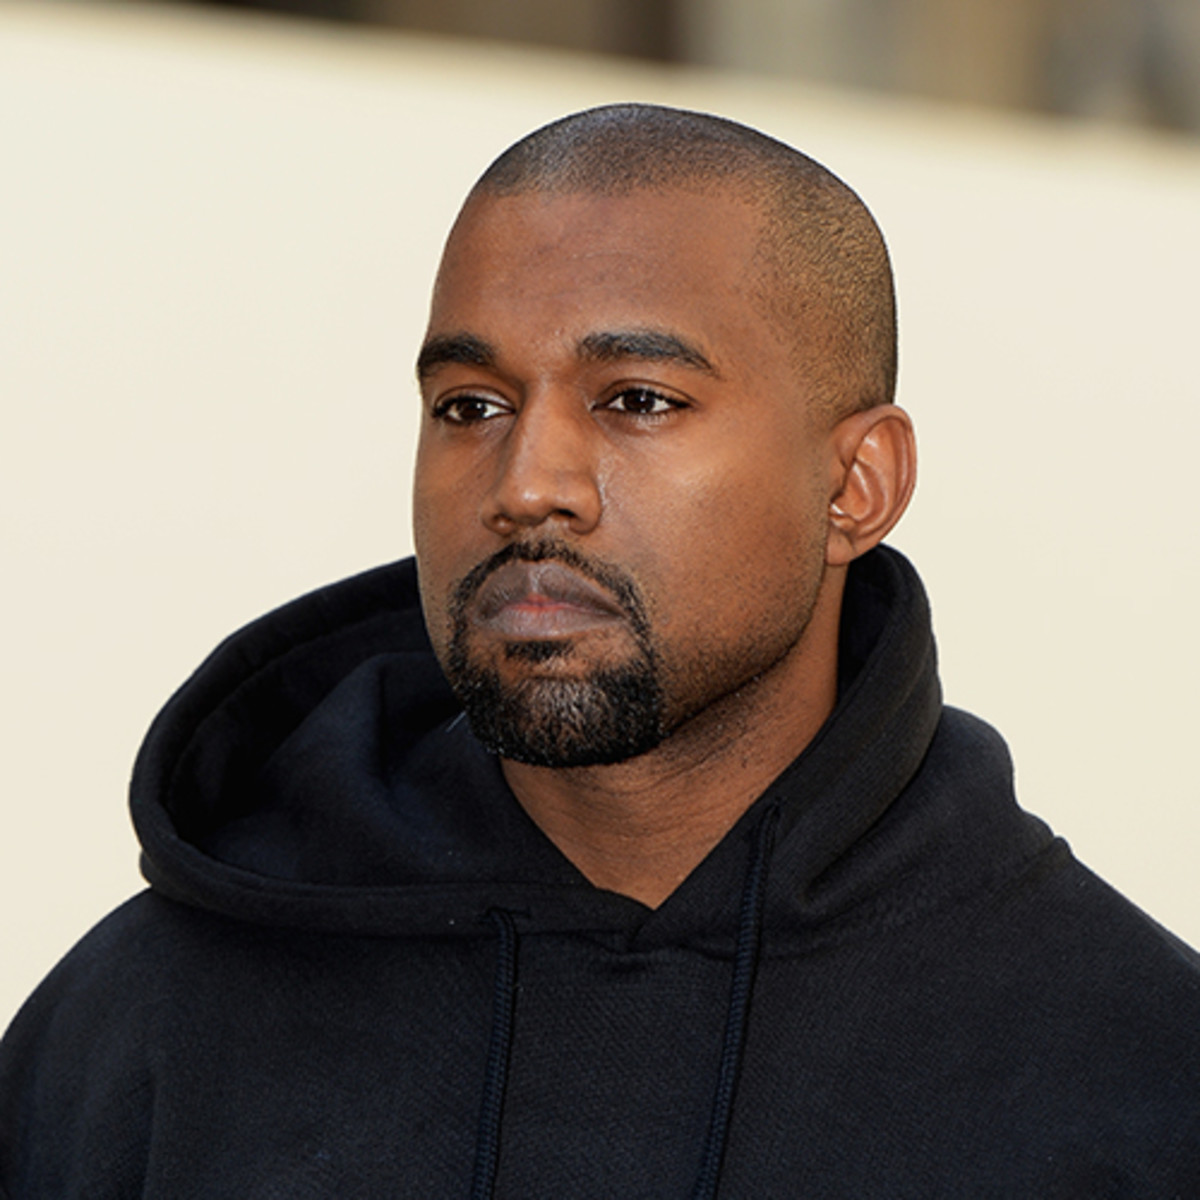 Kanye West Biography   Biography